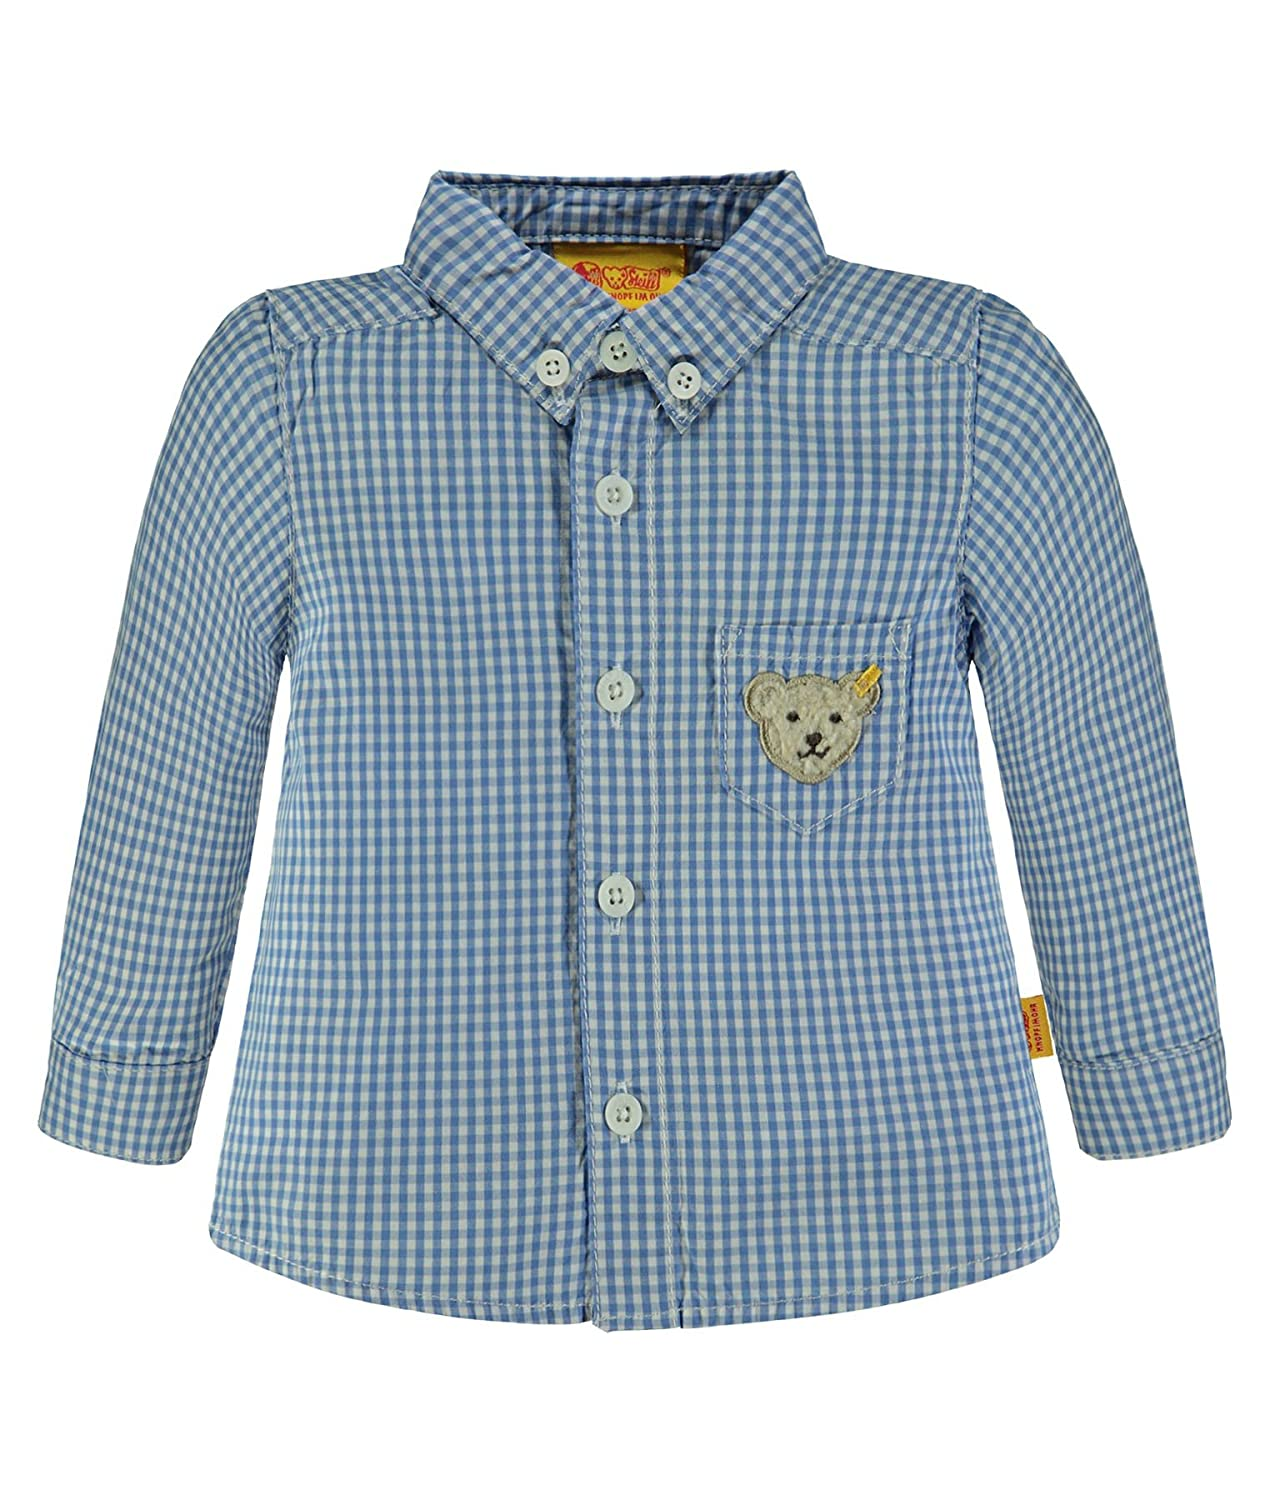 Steiff Camicia Bambino Steiff Collection 6833433